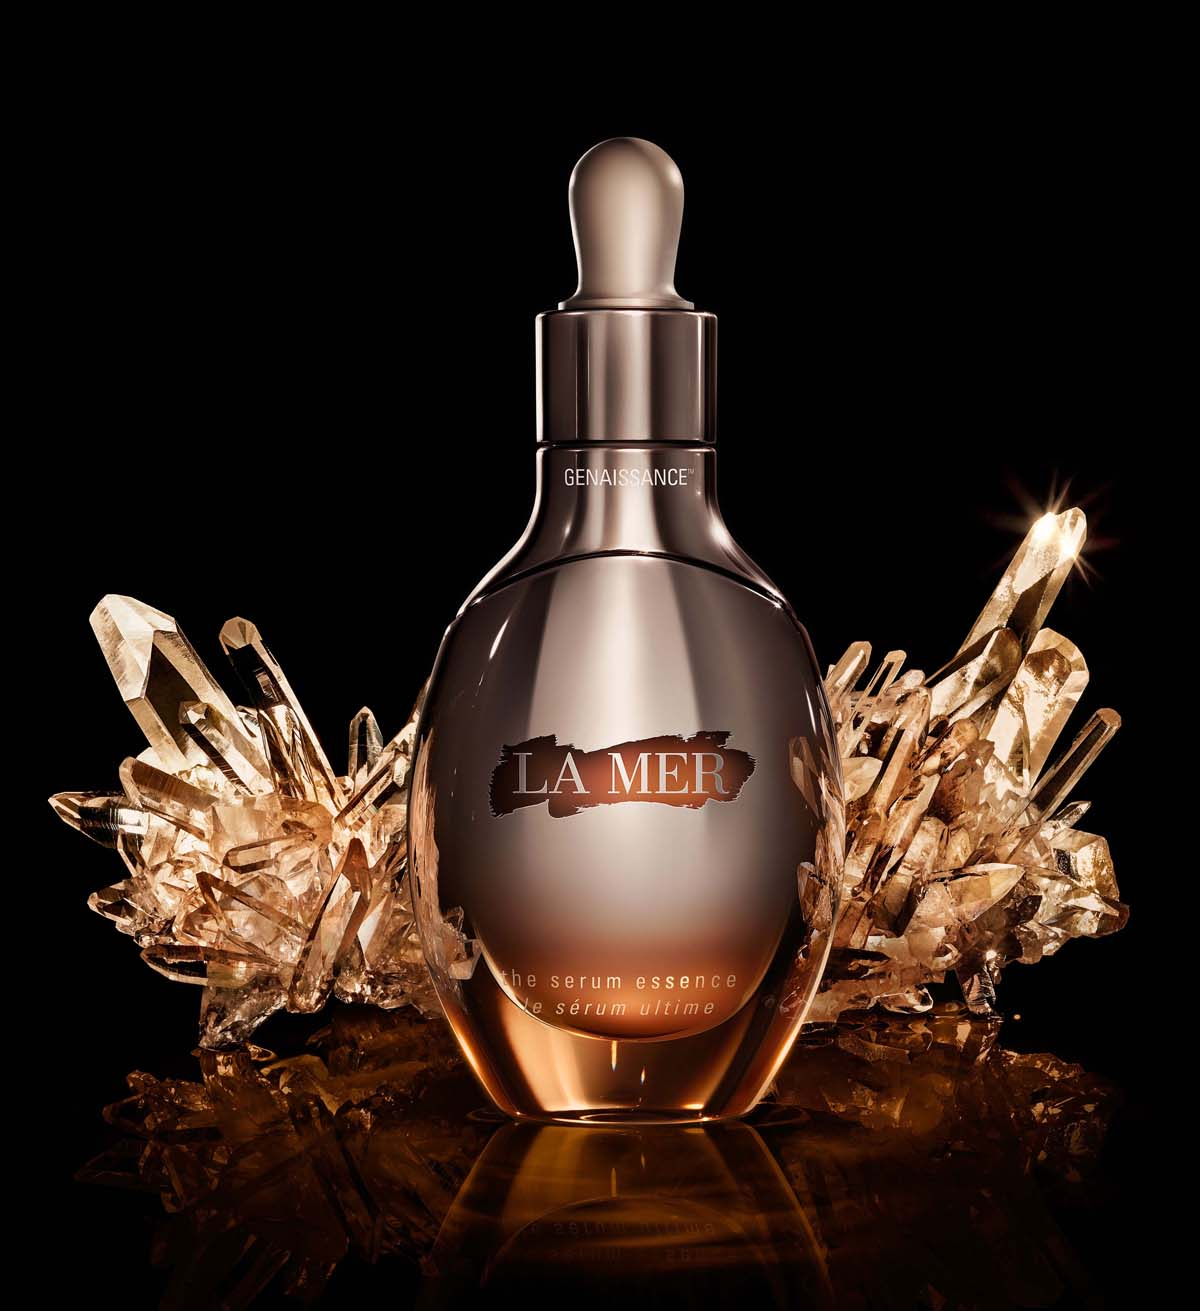 Genaissance-de-la-Mer_The-Serum-Intense_Romance-brightened